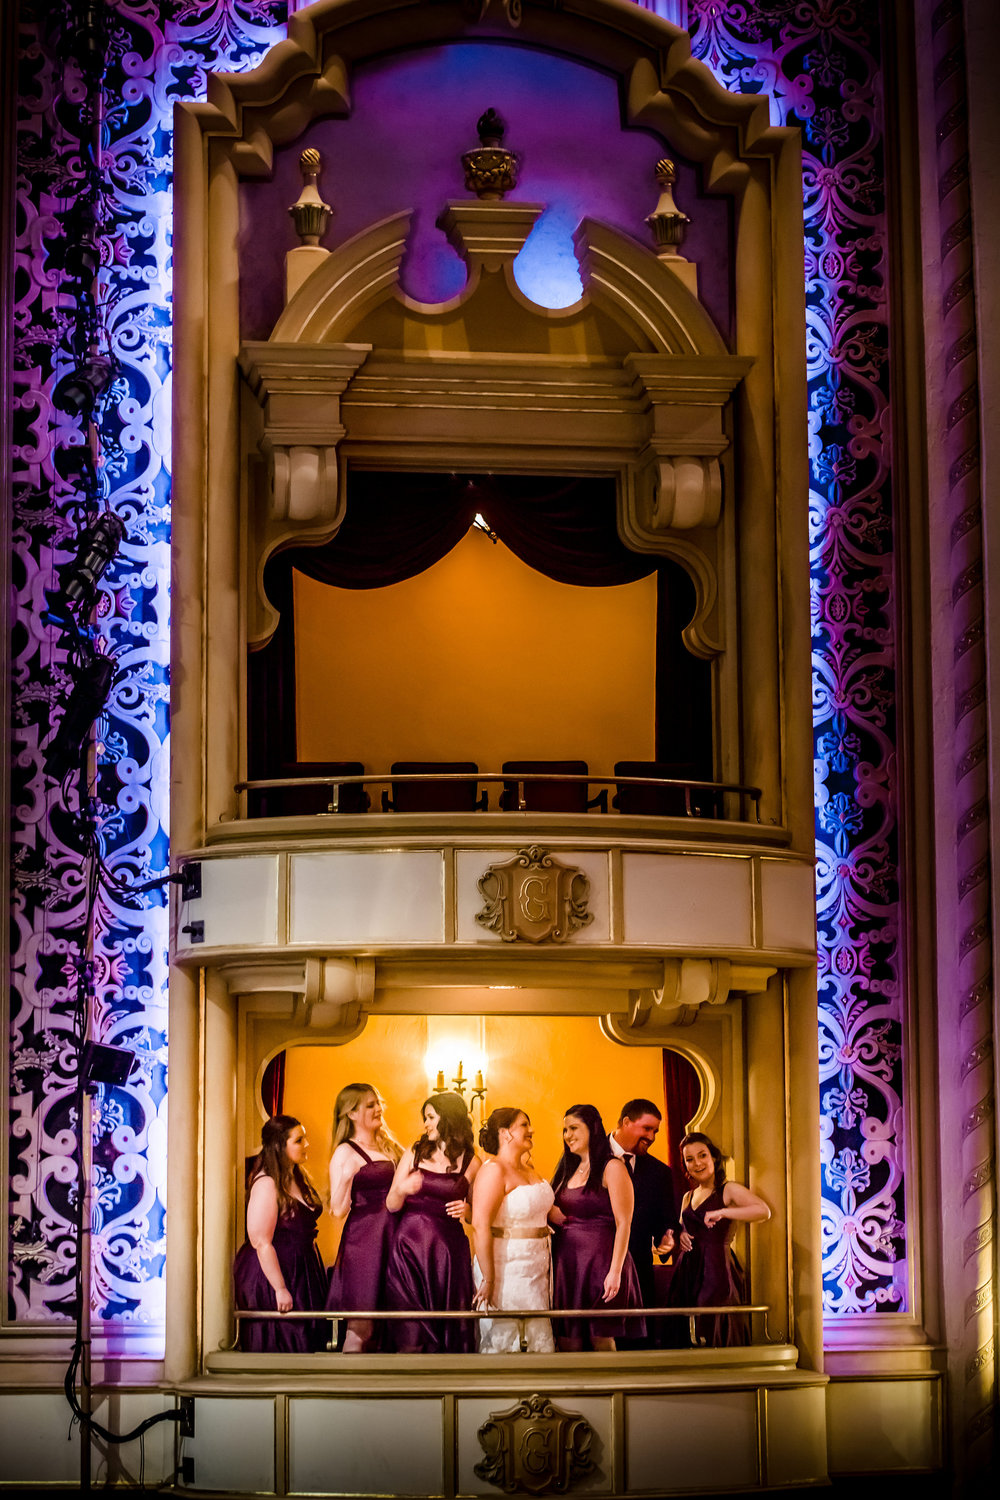 santabarbarawedding.com | The Granada Theatre | Theater Venue | Location Wedding Ceremony | Reception Venue | Balcony